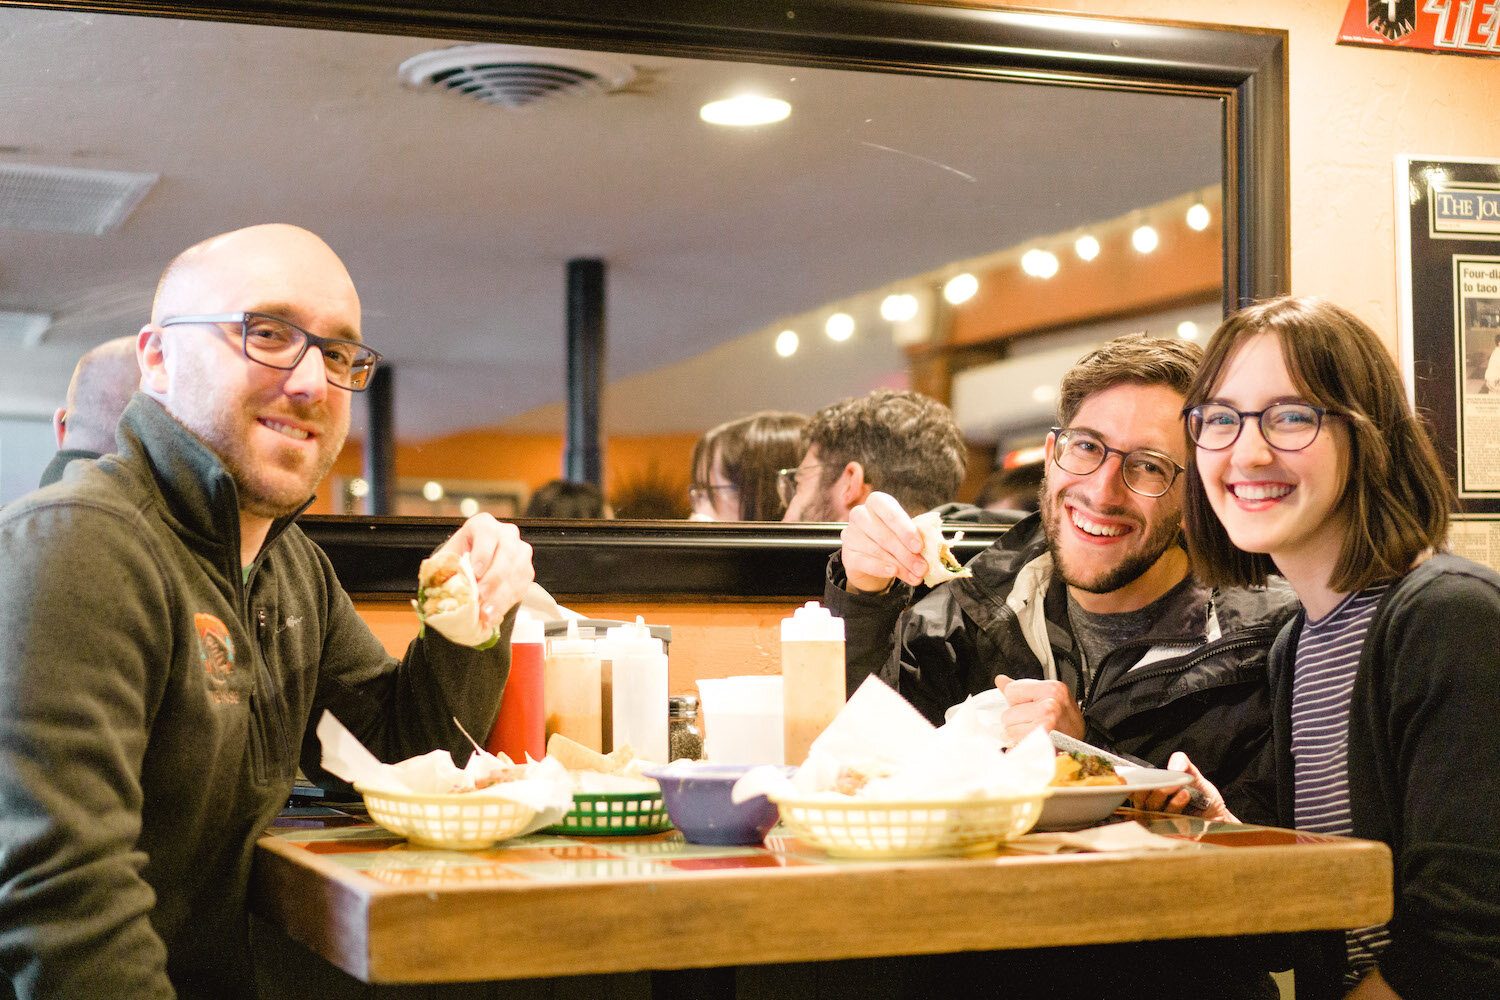 Chris Cox, Austin, and Regan Shorter at Big Truck Tacos. Have you ever seen a photo that made you want to say #squadgoals more than this one?  Photo by: Regan Shorter on behalf of The House OKC